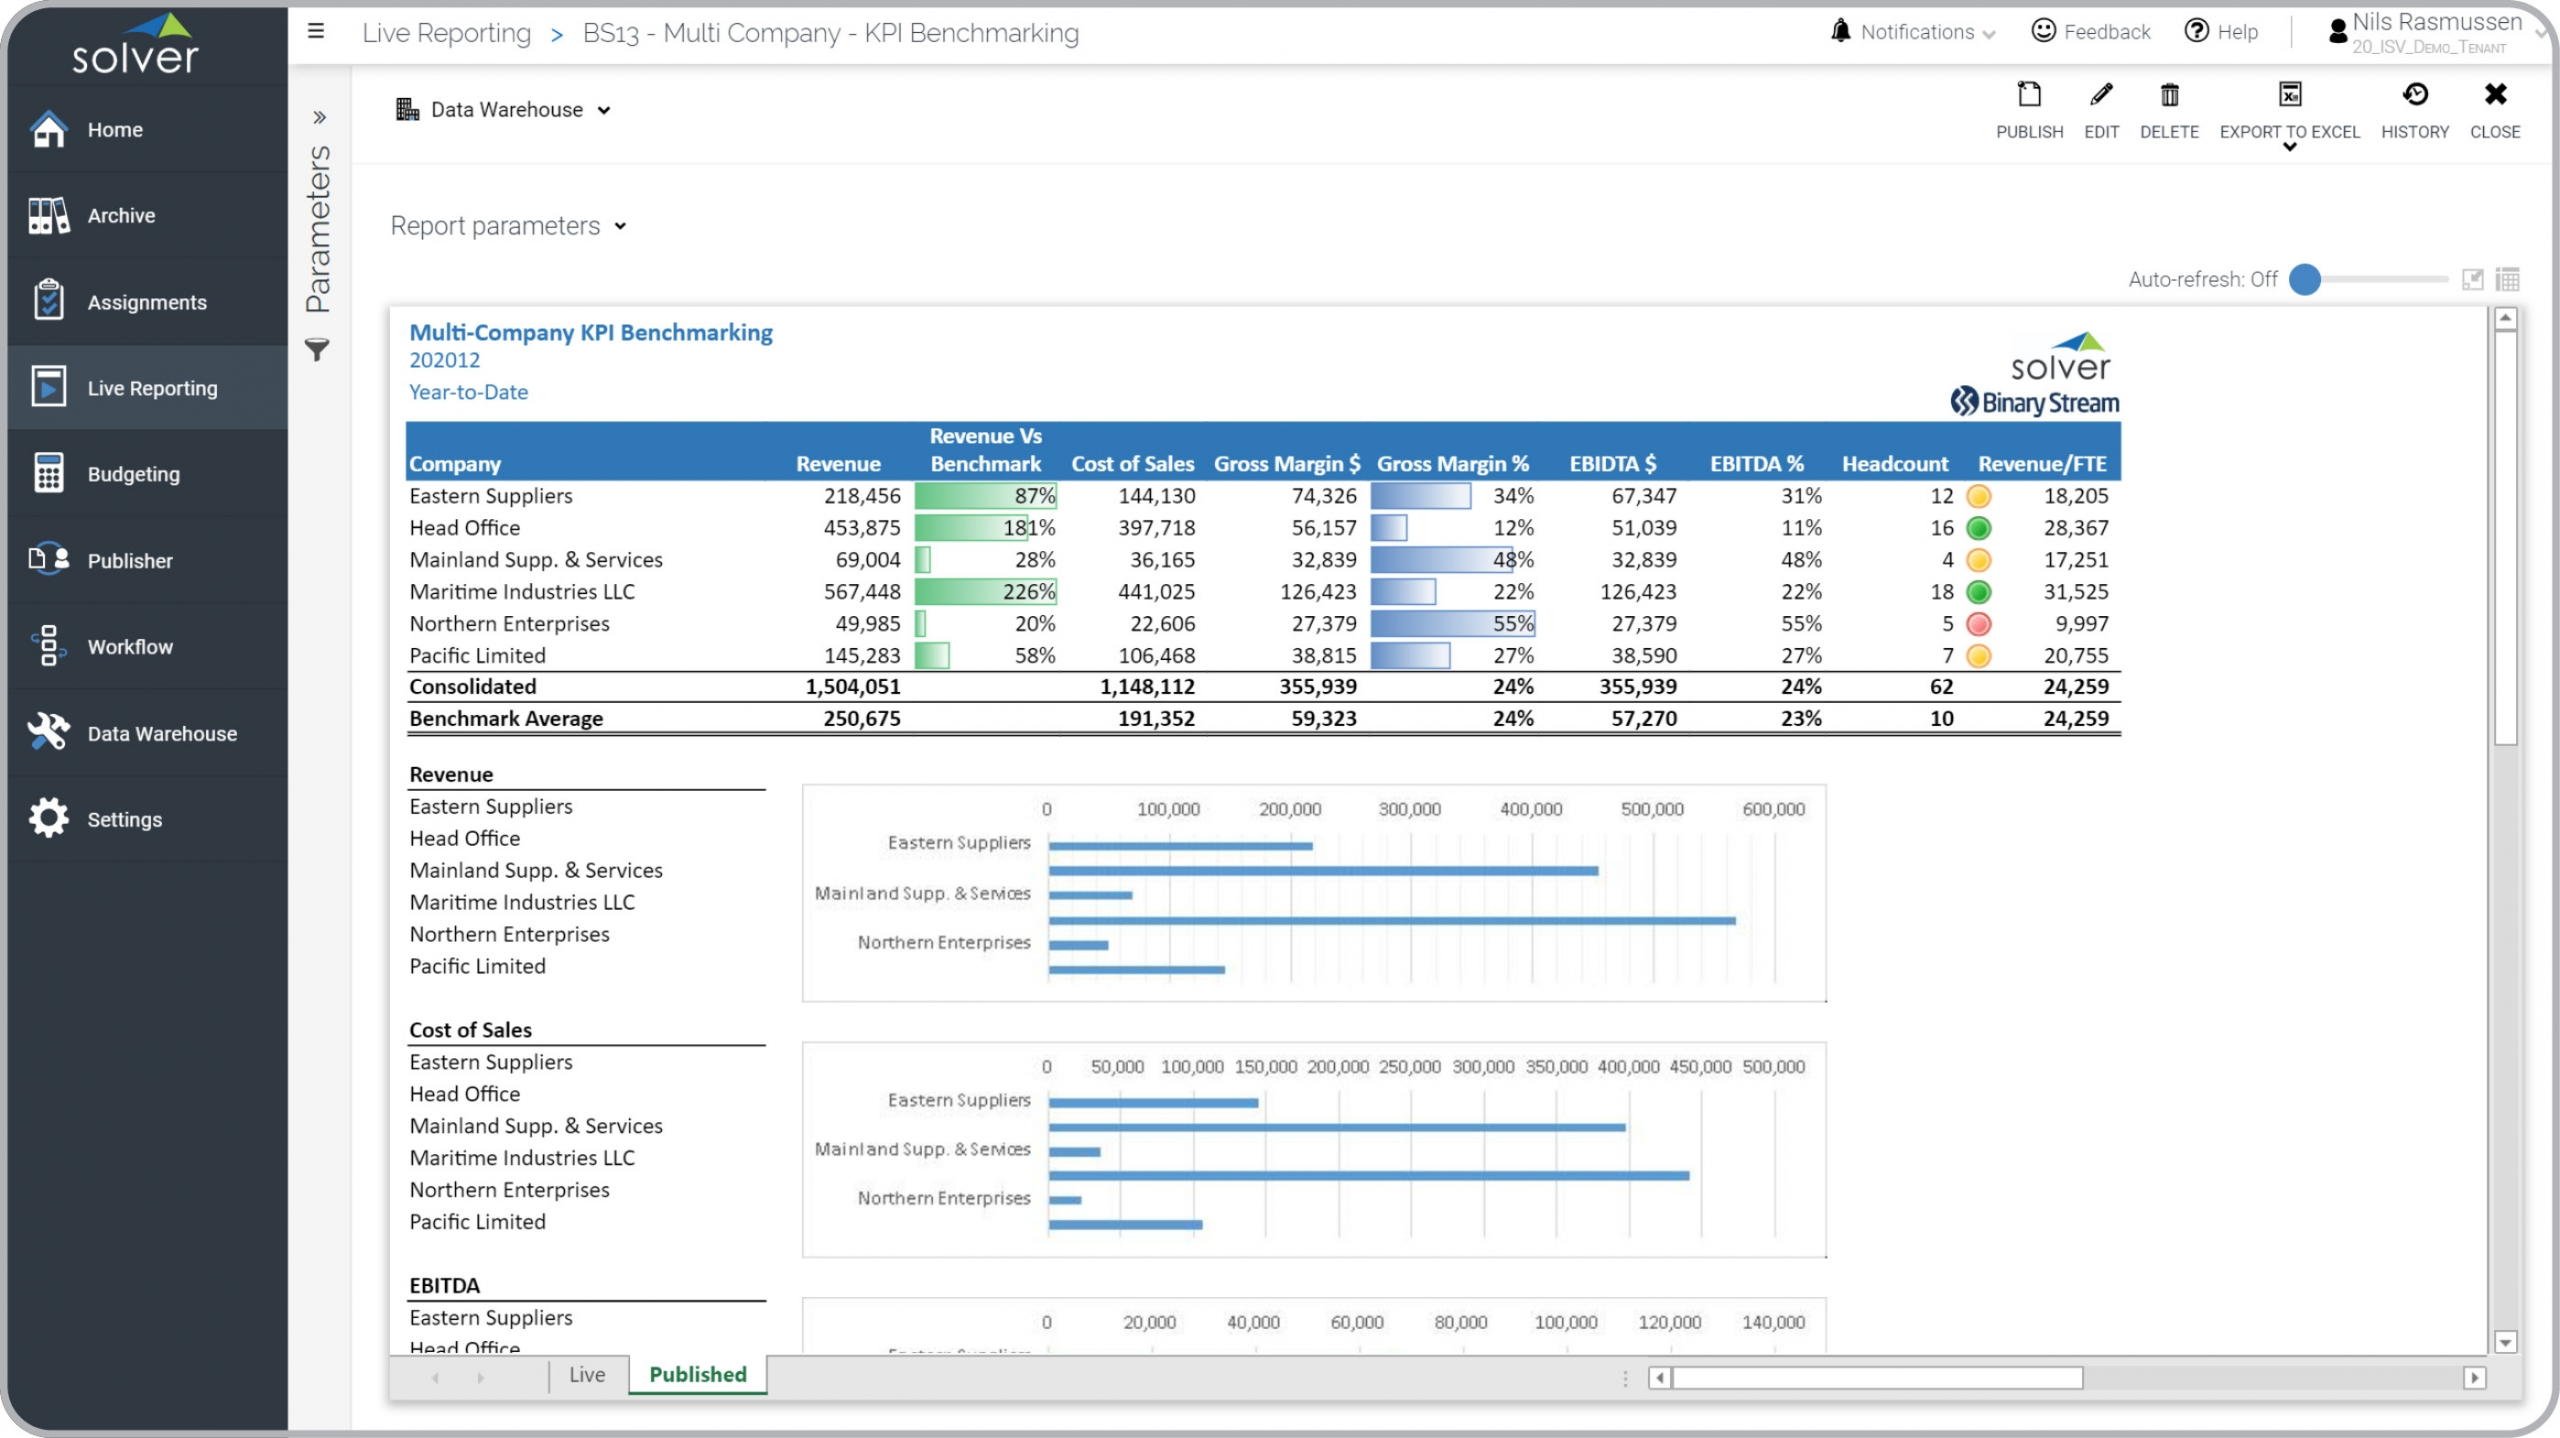 Multi-company KPI Benchmarking